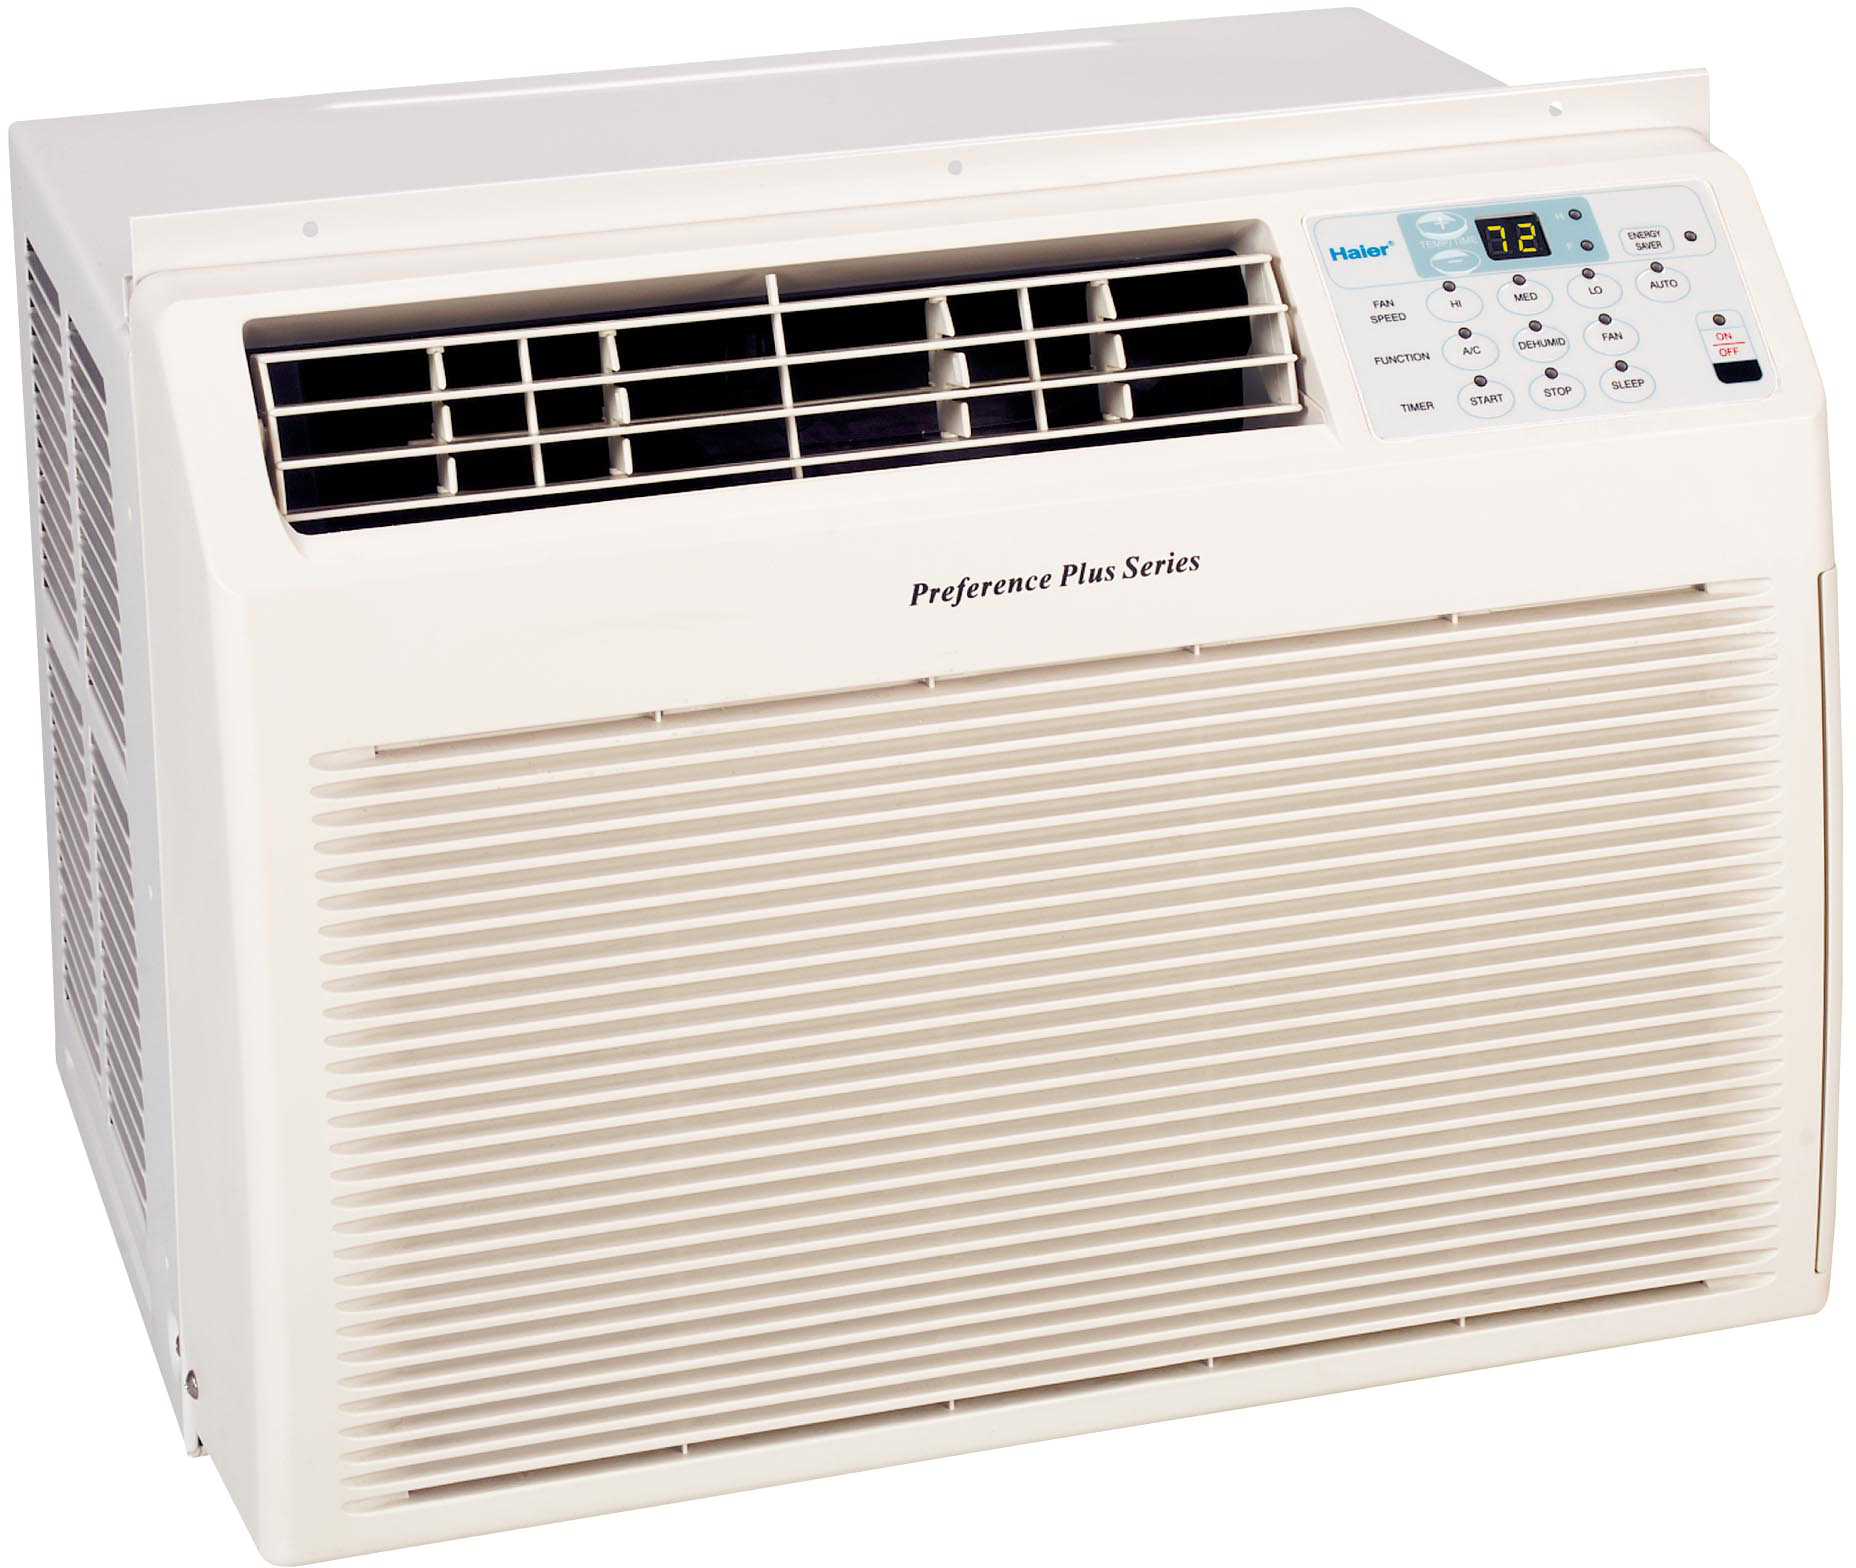 AIR AUTO CONDITIONER WINDOW – AIR CONDITIONER #437788